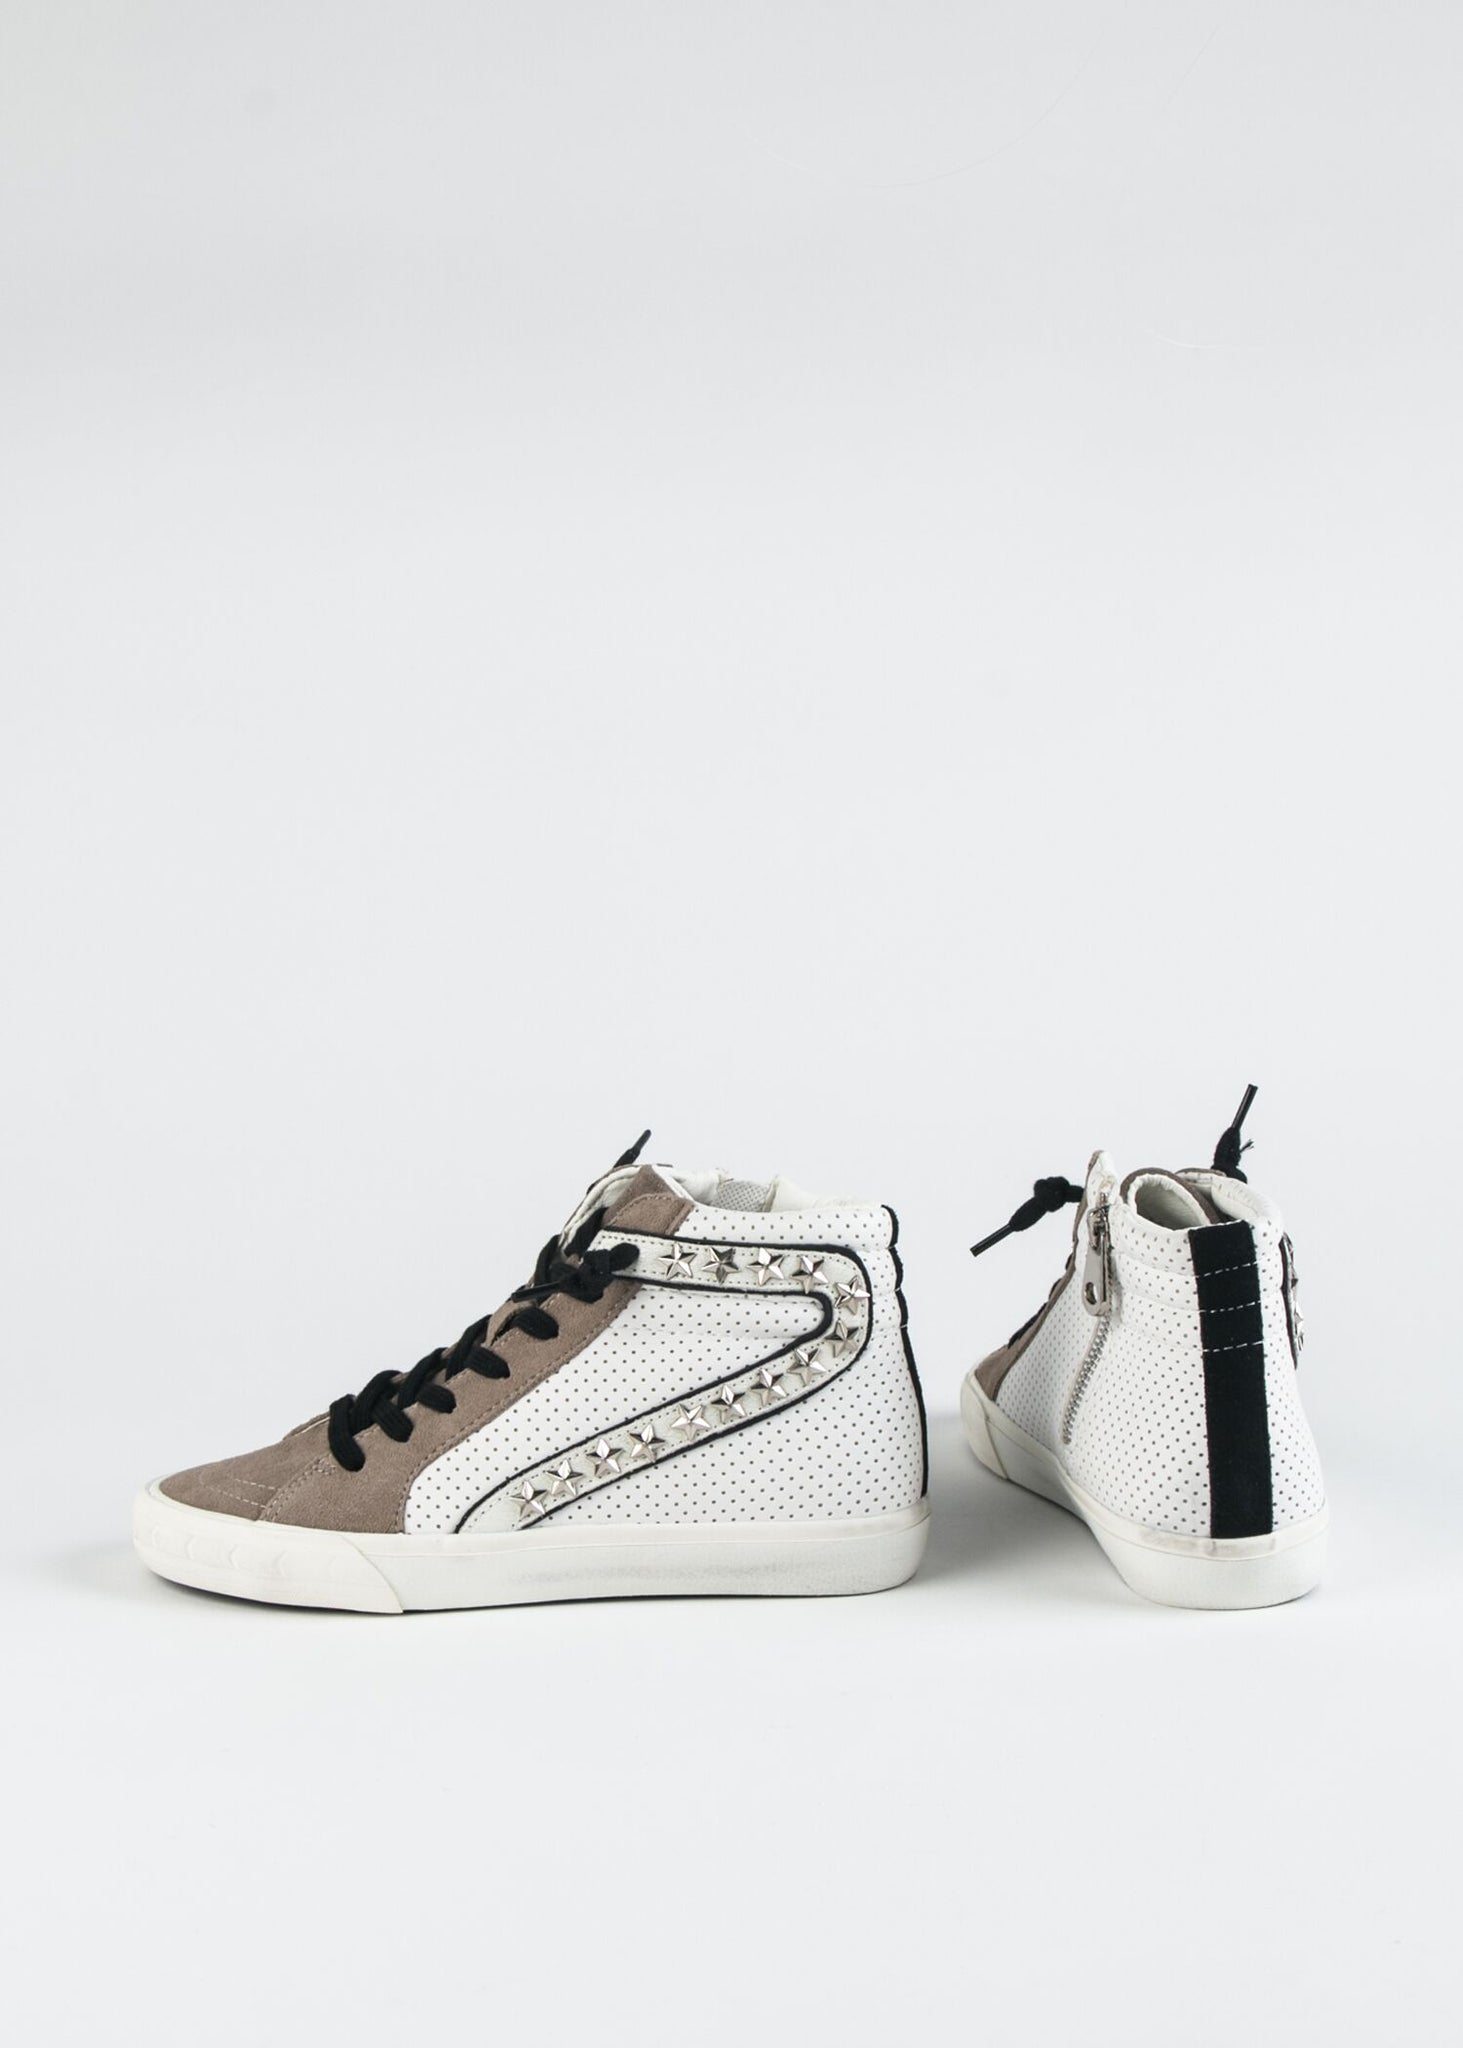 GADOL-HIGH PERFORATED AND STAR STUDDED SNEAKER